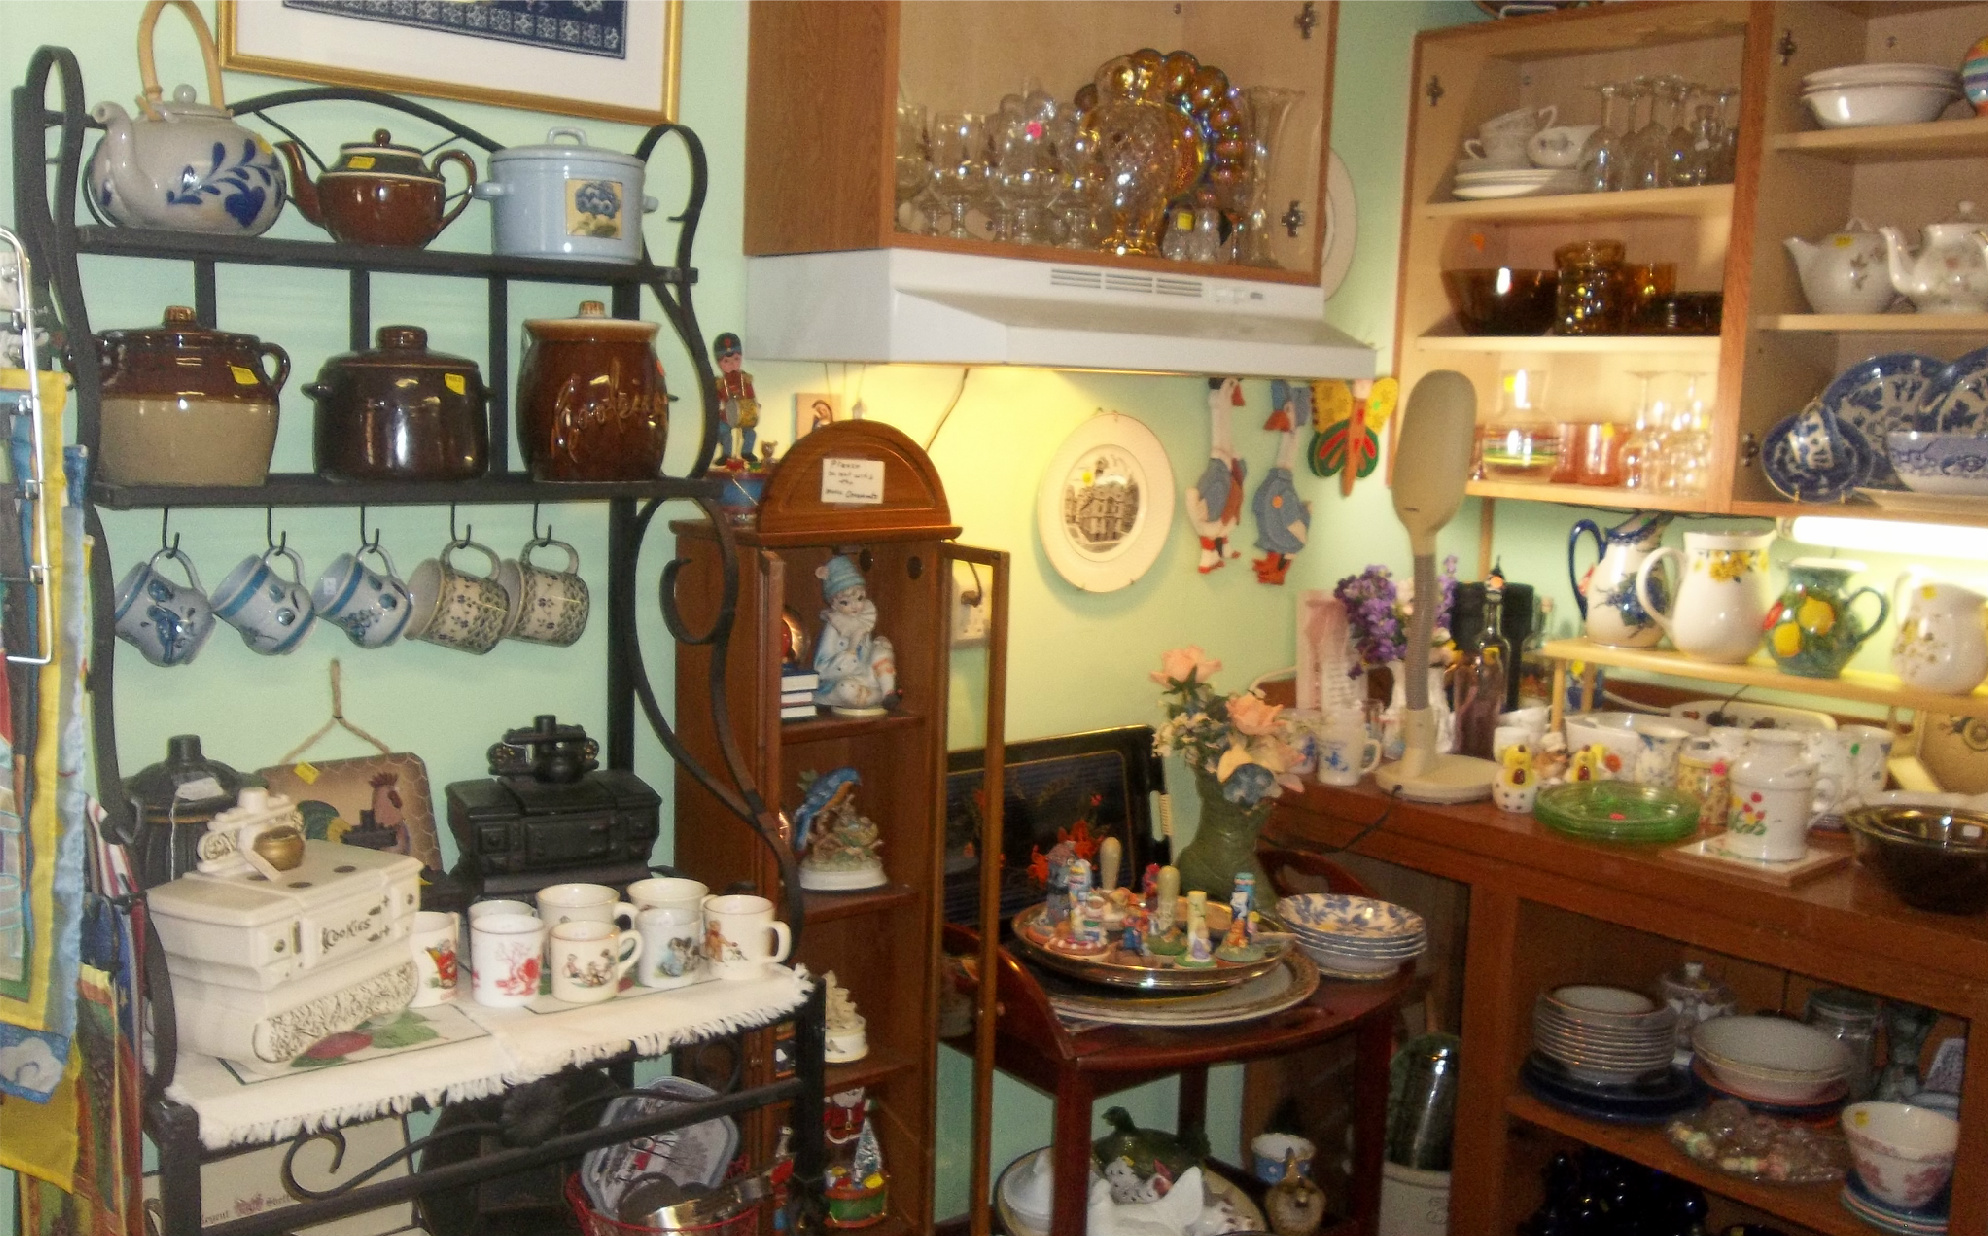 collectibles and home decor for sale at New To You Shop in Unity Maine